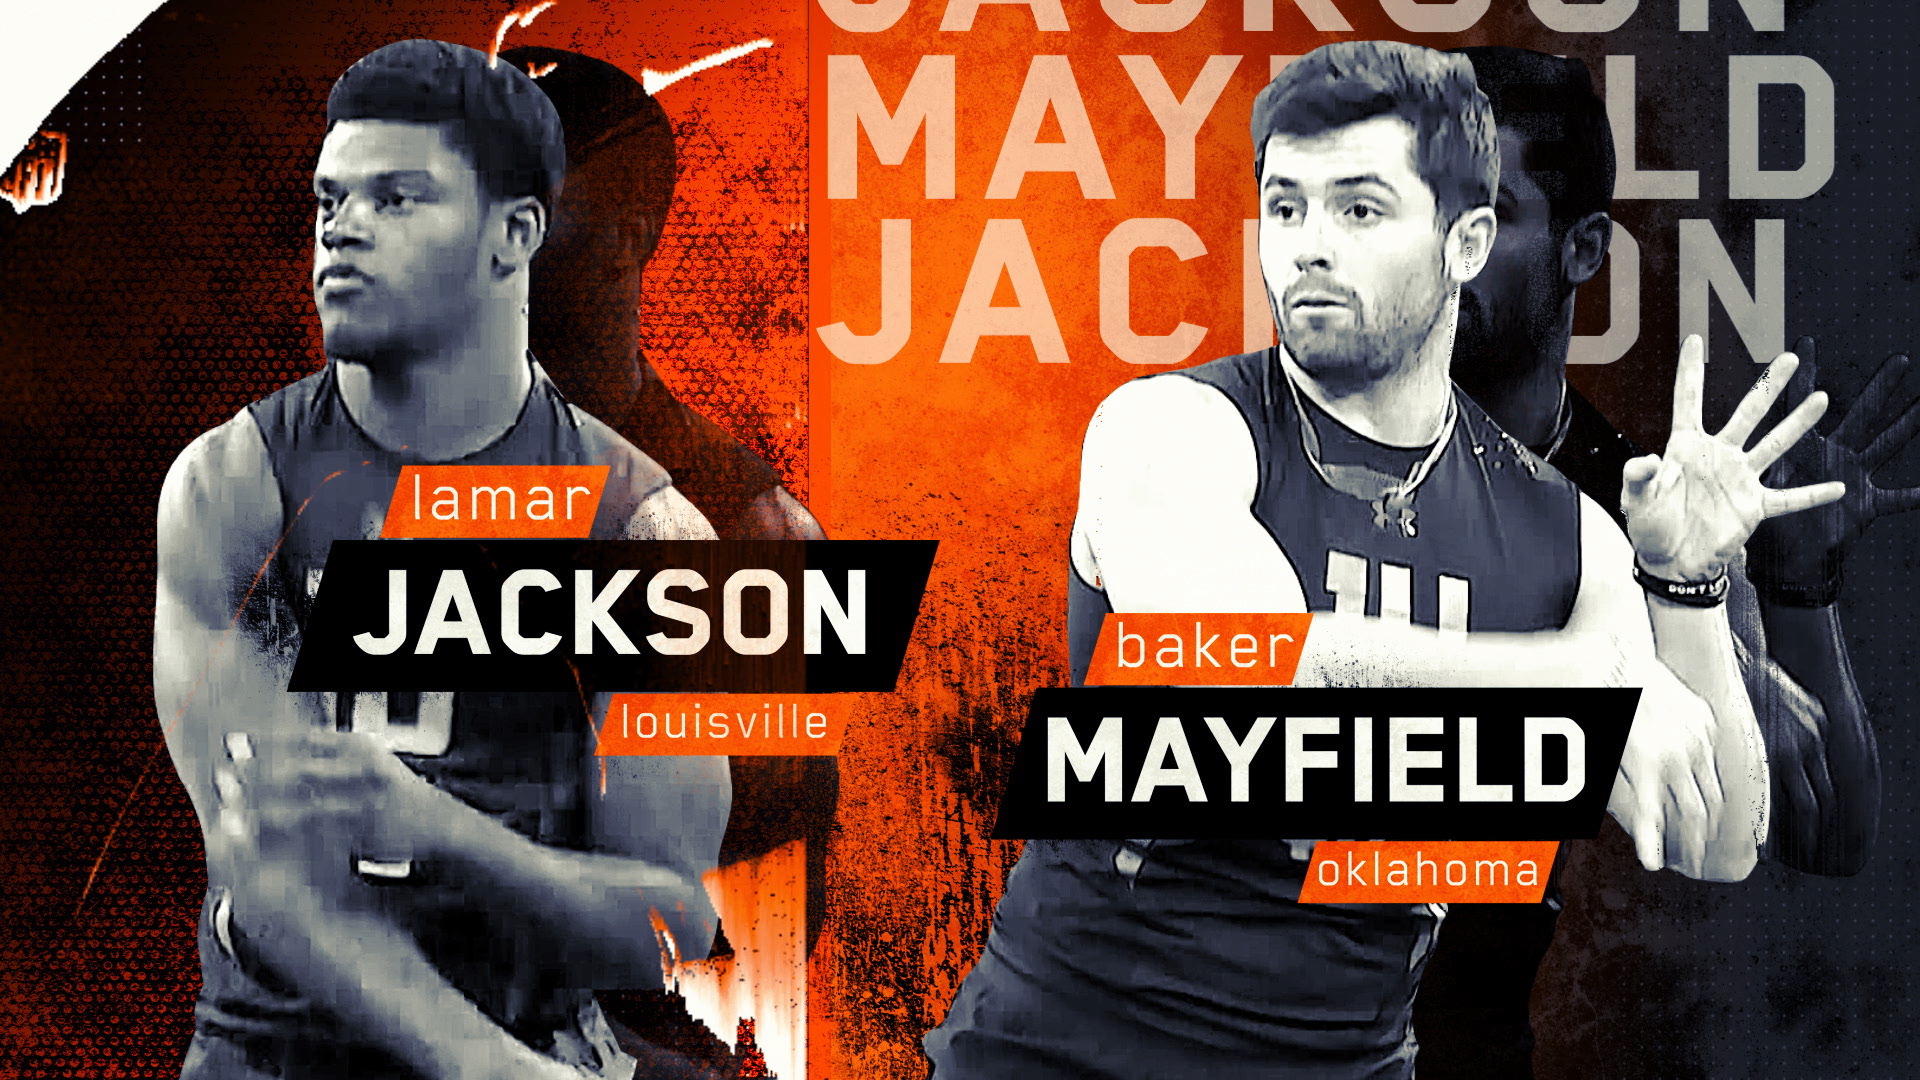 Soul and Science: Lamar Jackson & Baker Mayfield (Full Segment)